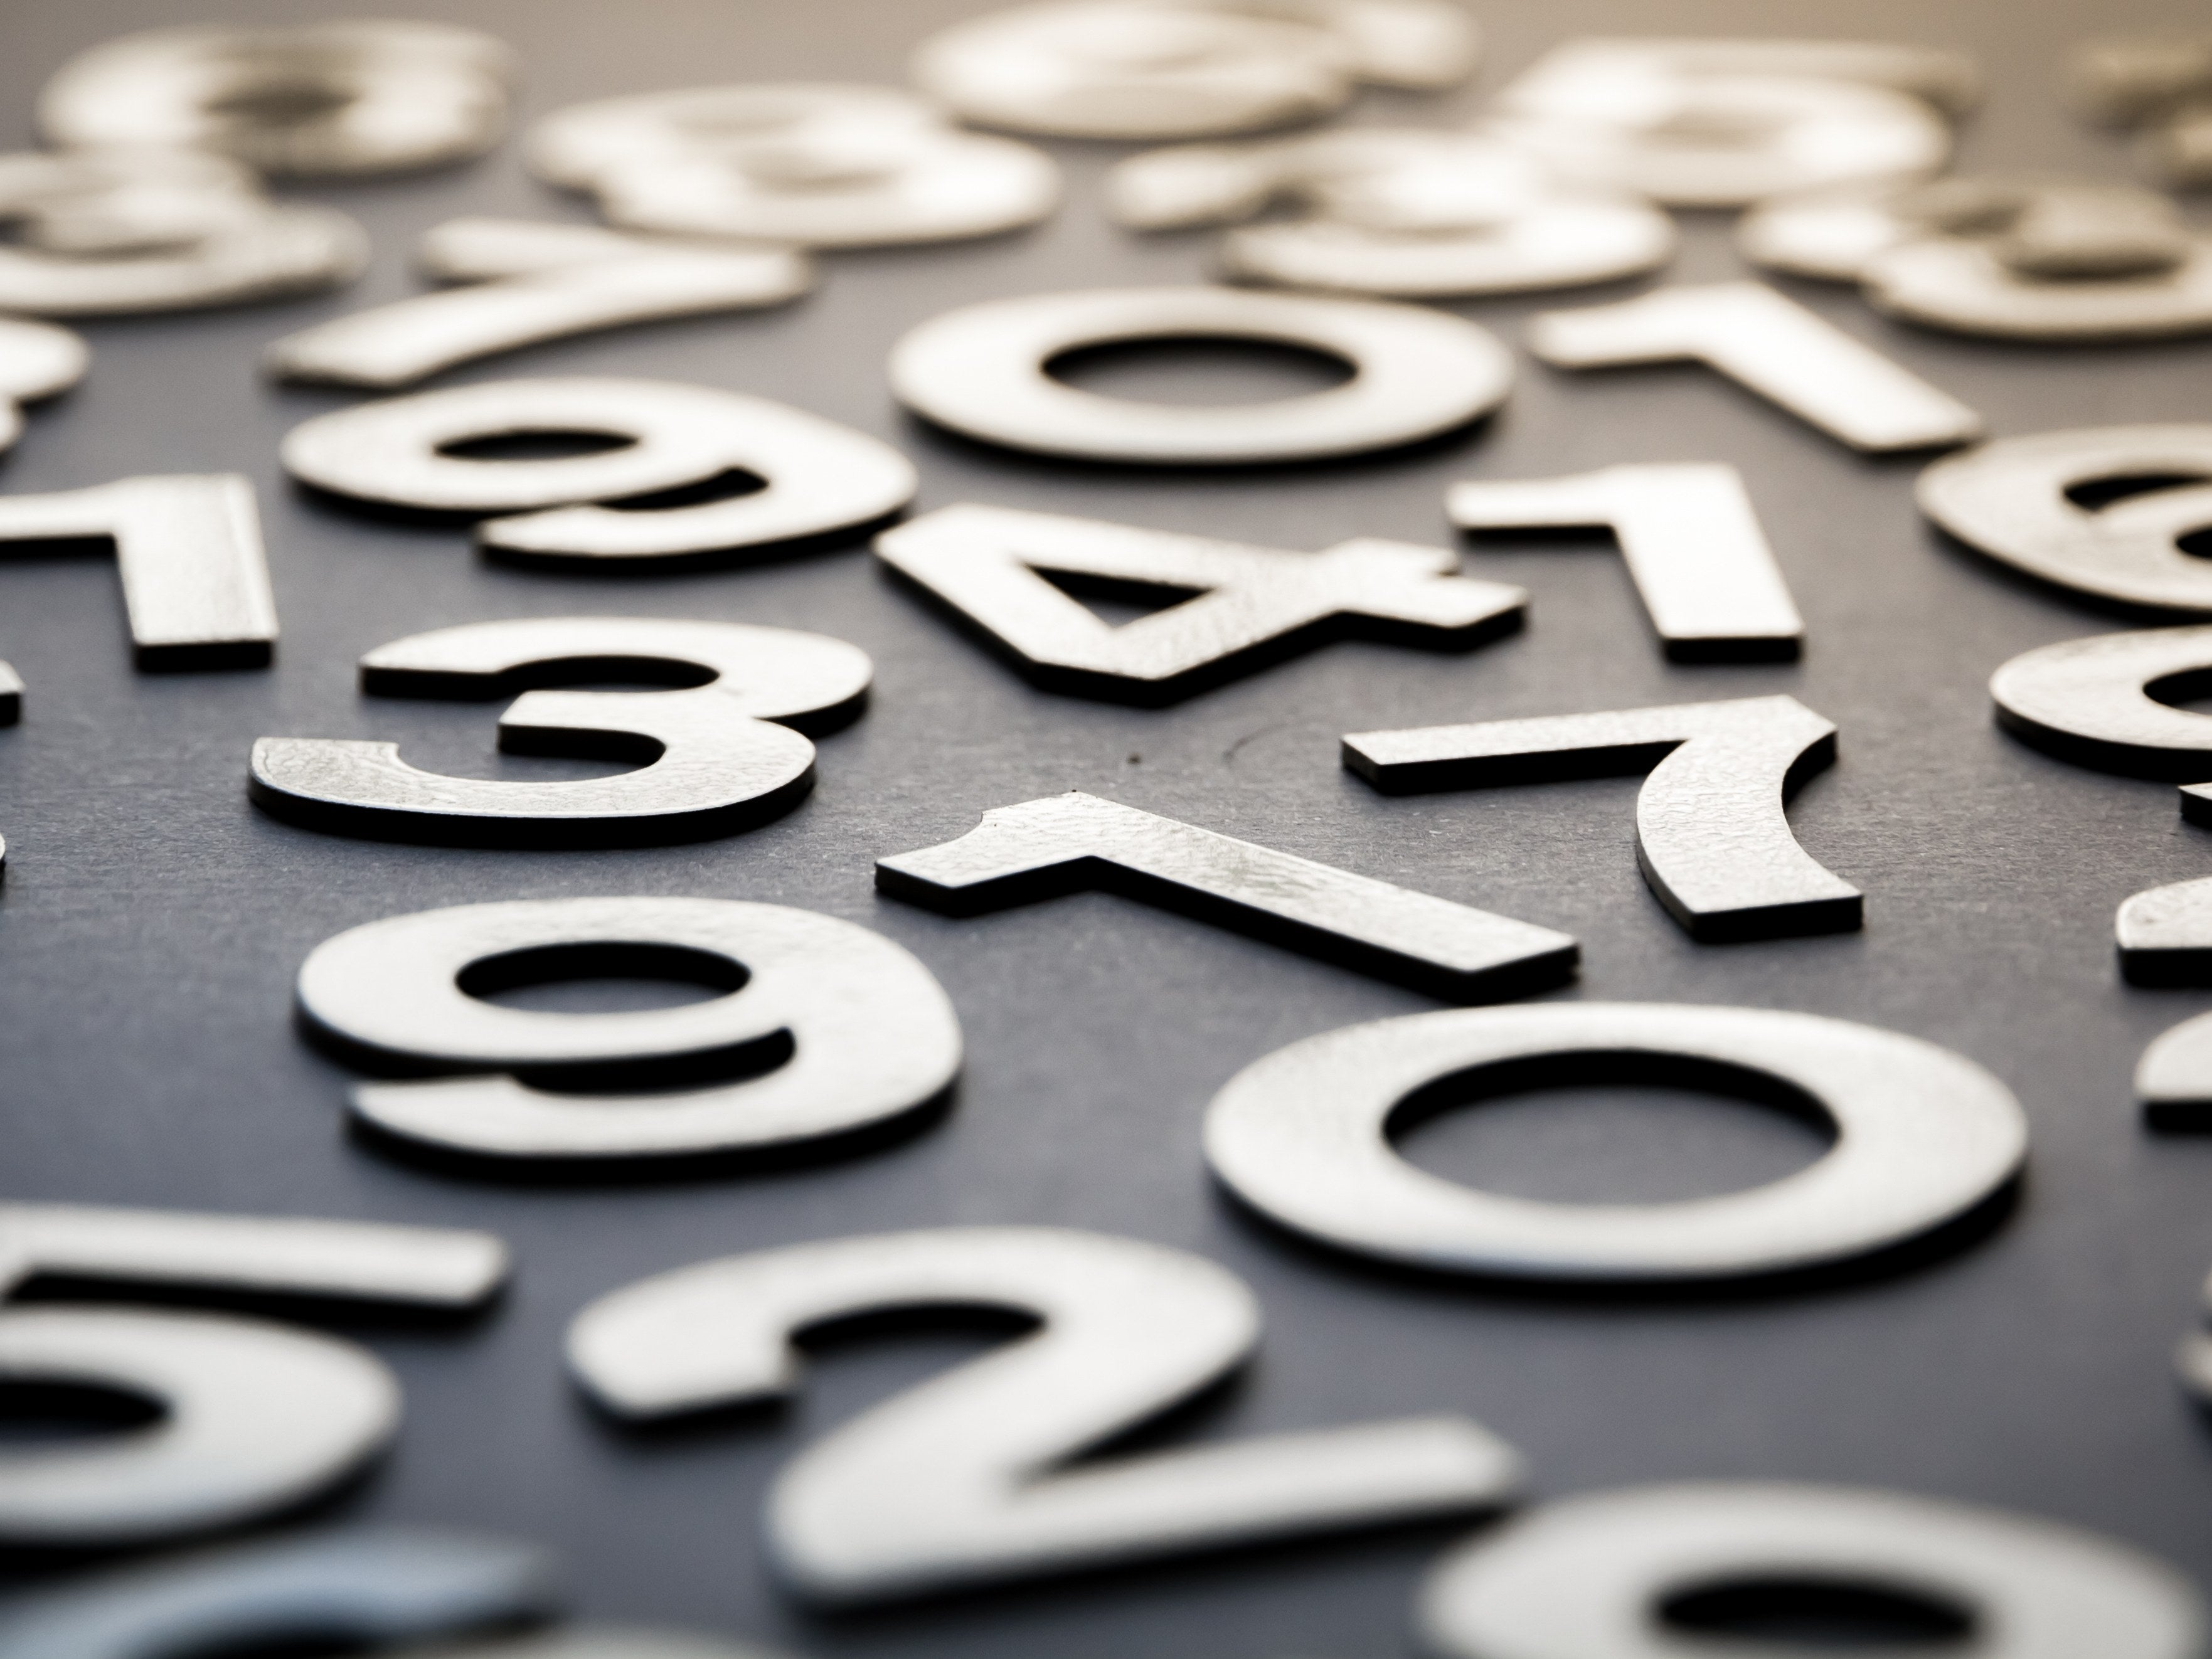 Have your say on Director Identification Numbers